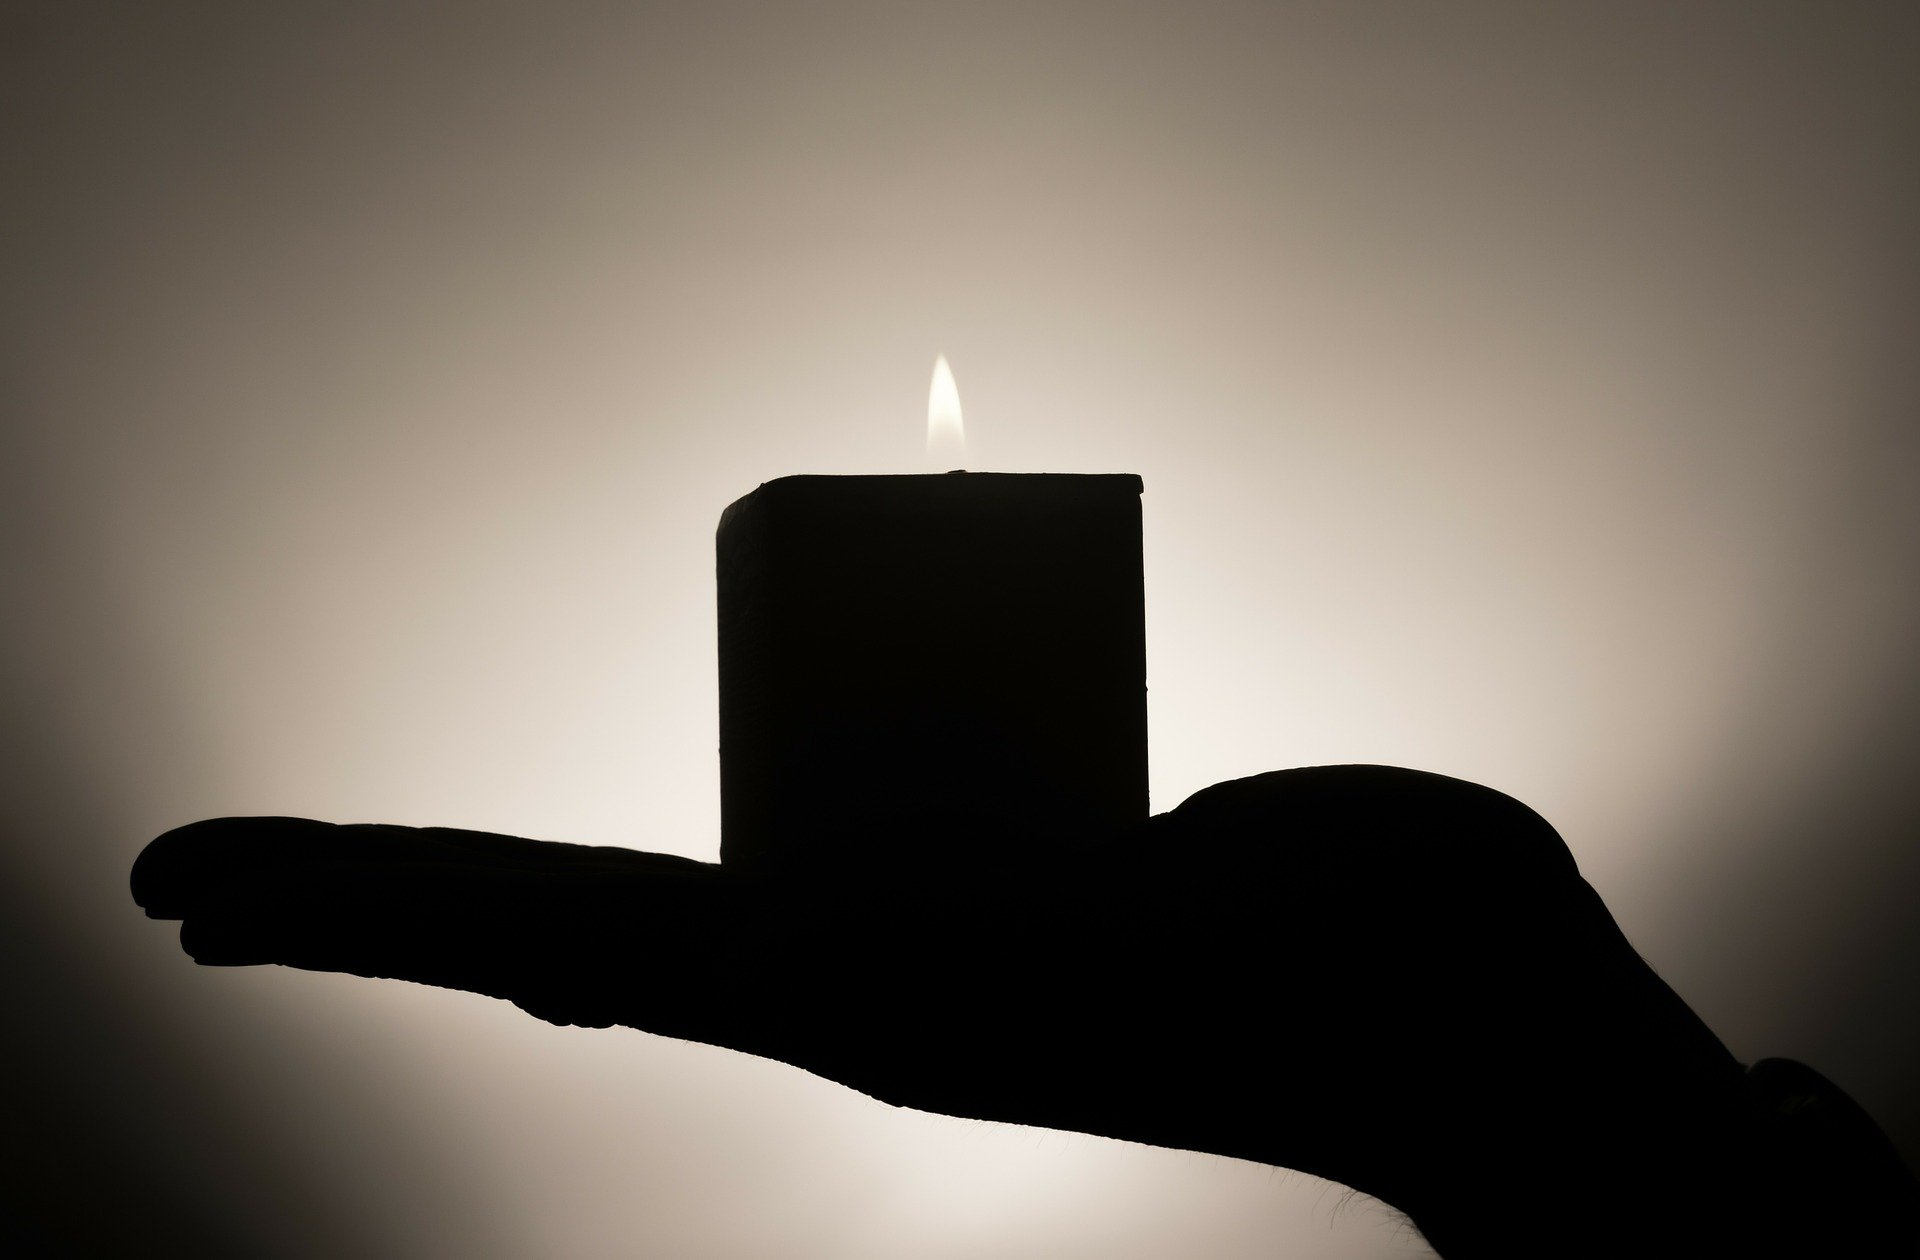 Hand holding candle. https://pixabay.com/photos/candle-hand-candlelight-flame-335965/